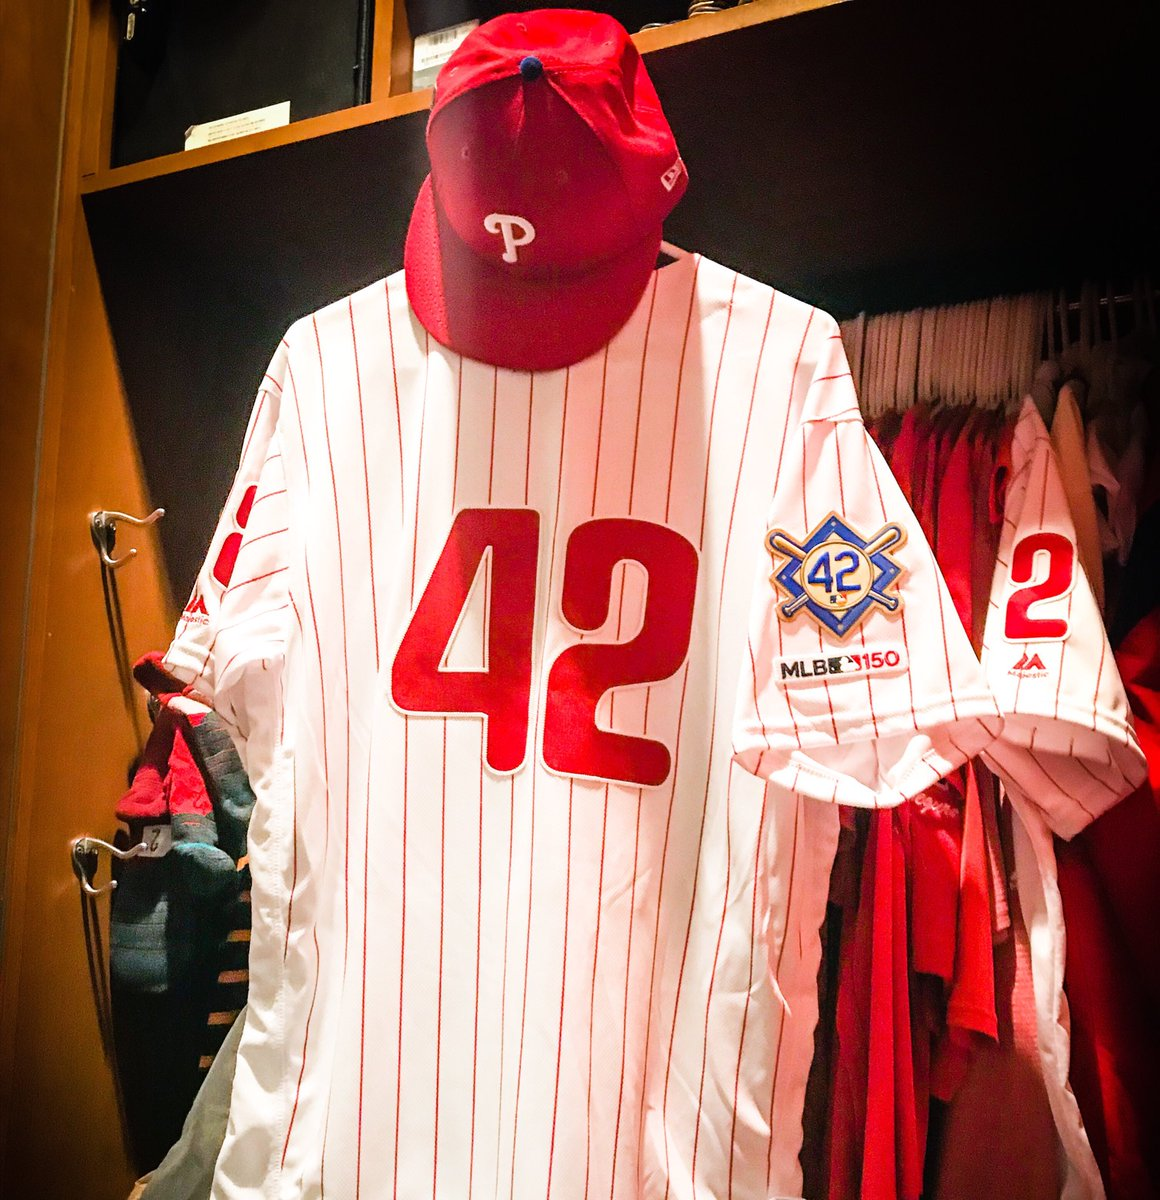 Tonight, we're all 42.   Thank you, Jackie. #Jackie42 <br>http://pic.twitter.com/Bb3GZ0IQ0G